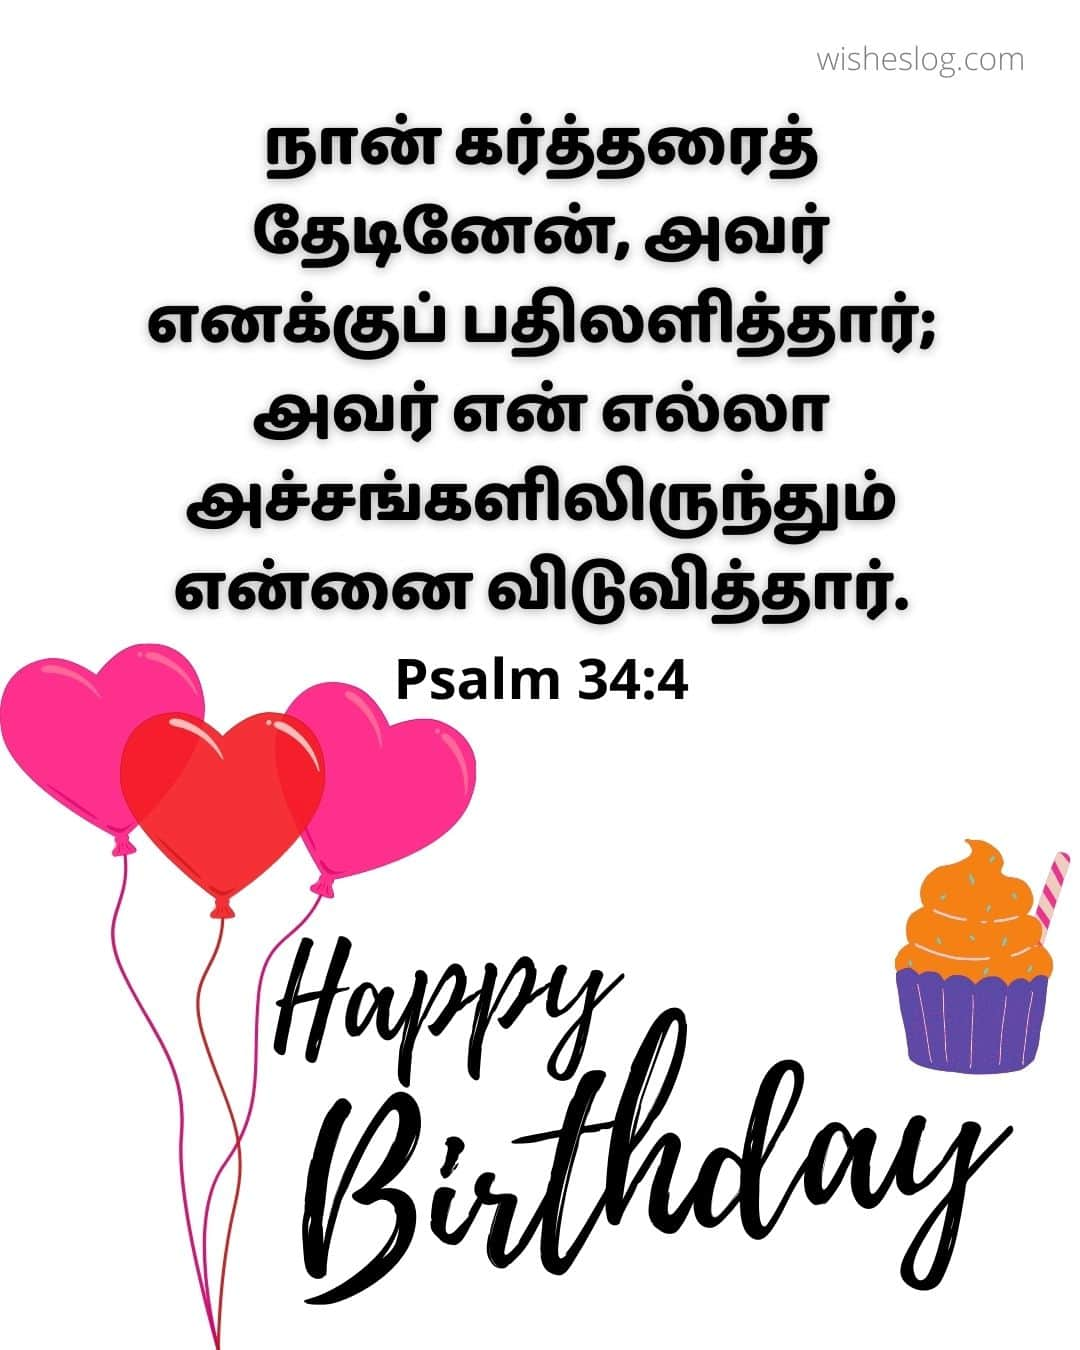 bible verses for birthday in tamil